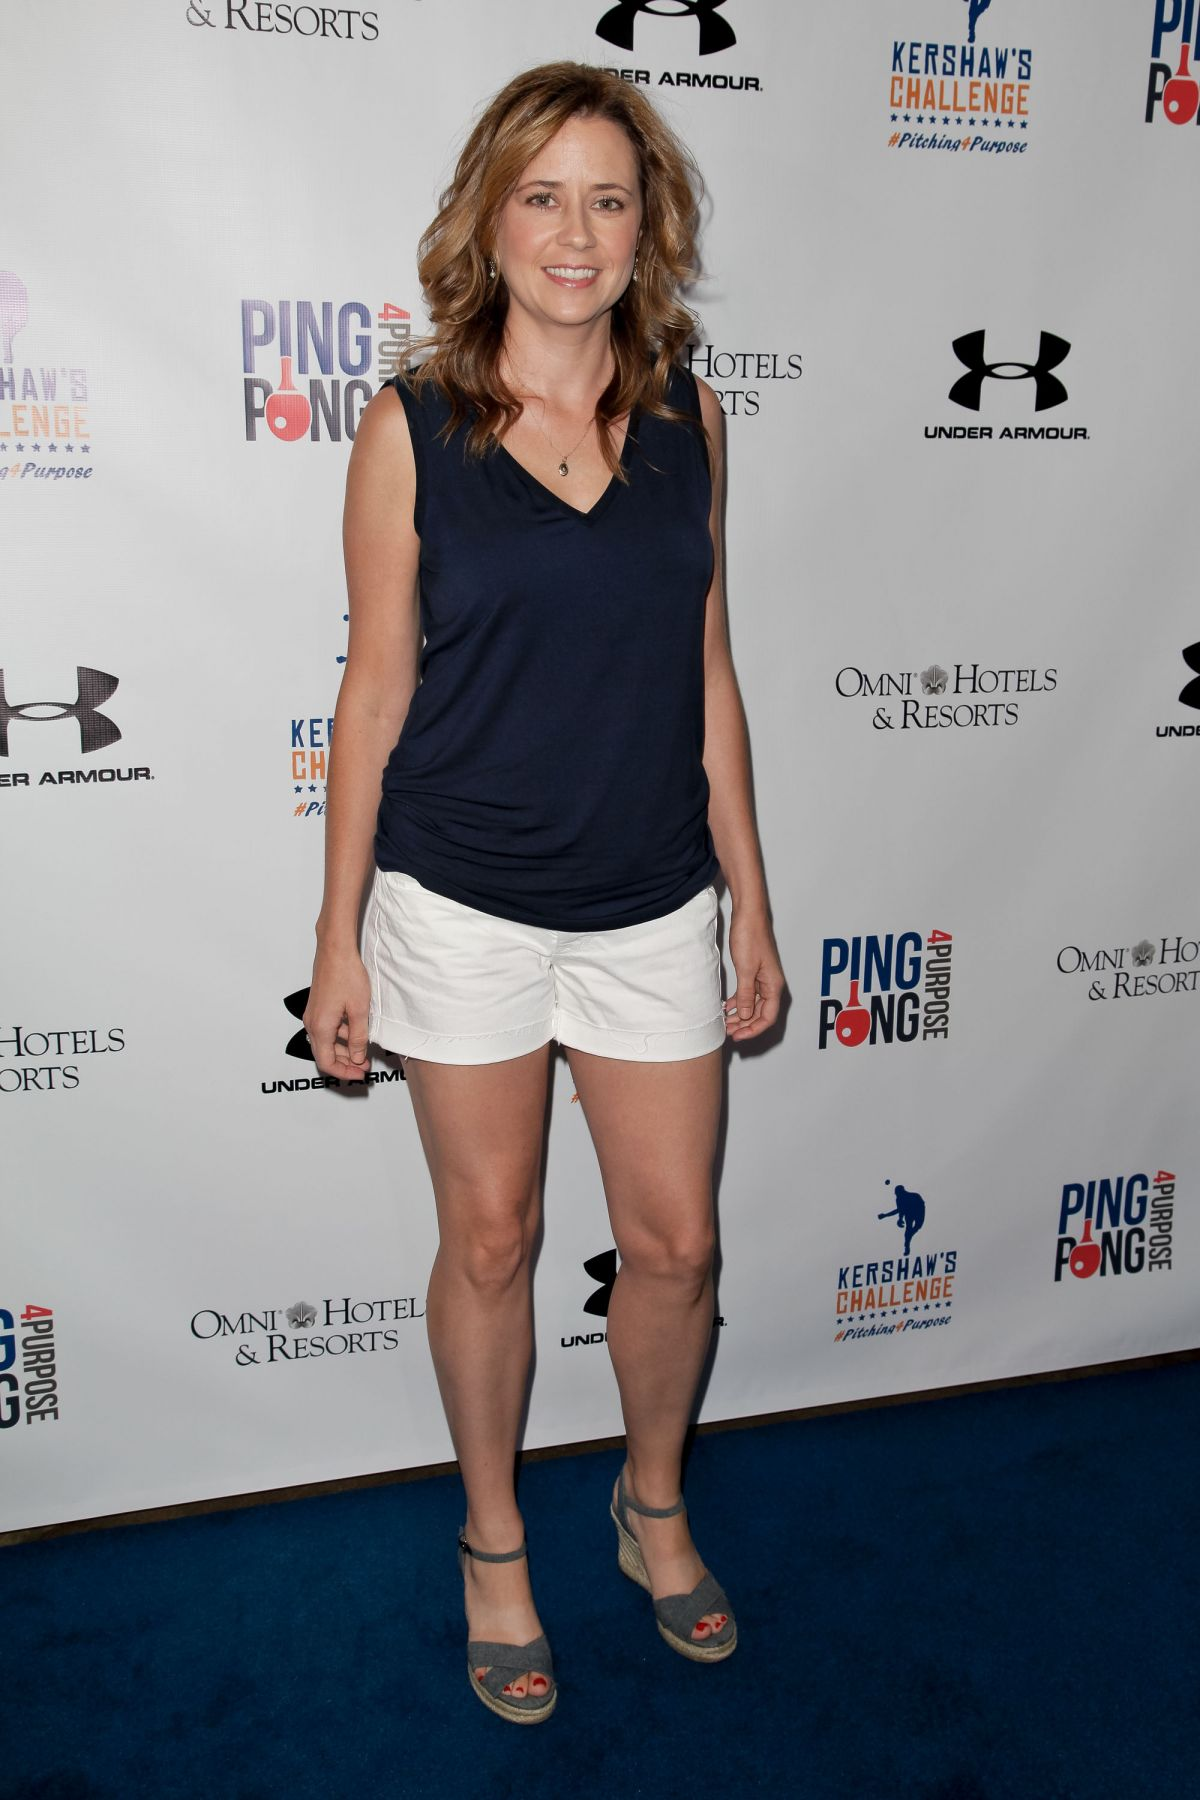 Jenna Fischer At Inaugural Ping Pong 4 Purpose Charity Event In LA ...